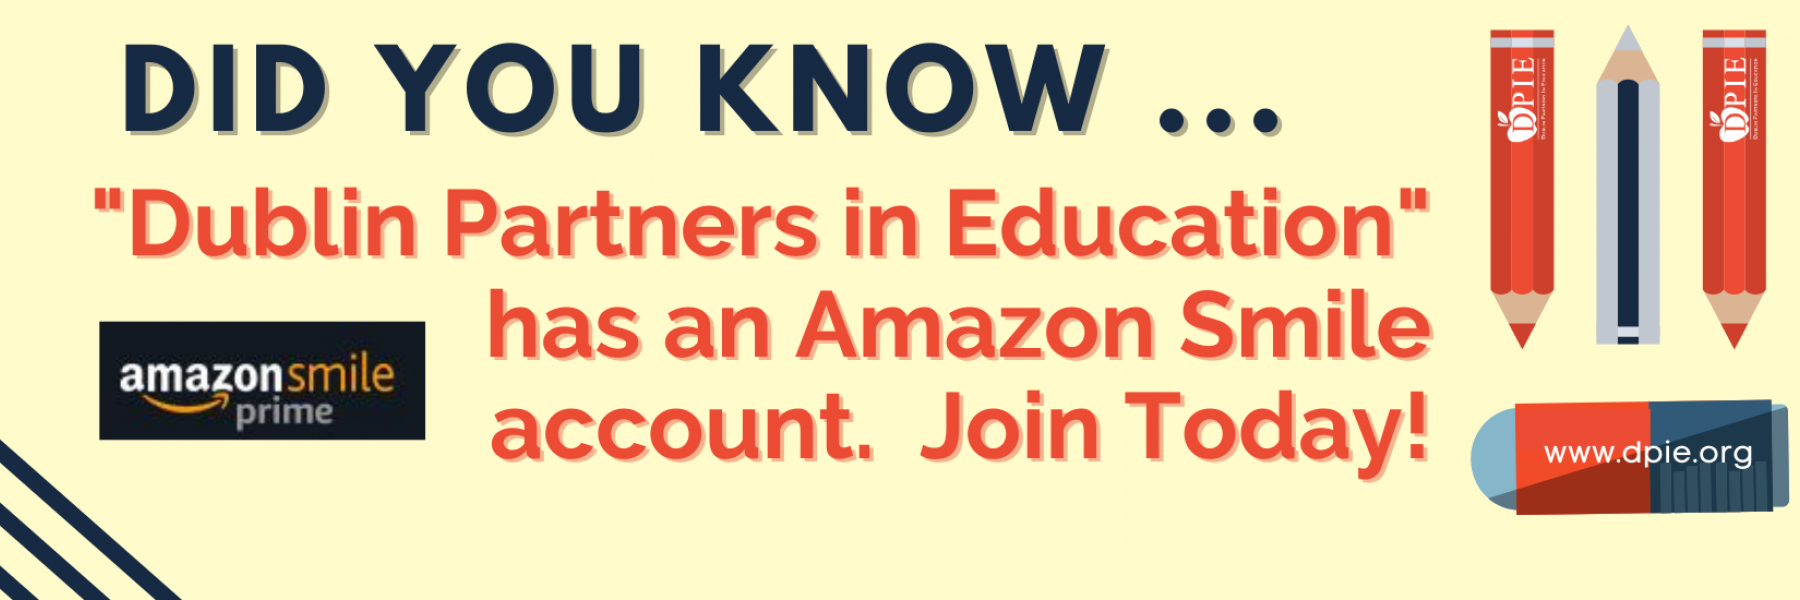 """Create an Amazon Smile account today and support """"Dublin Partners in Education"""""""